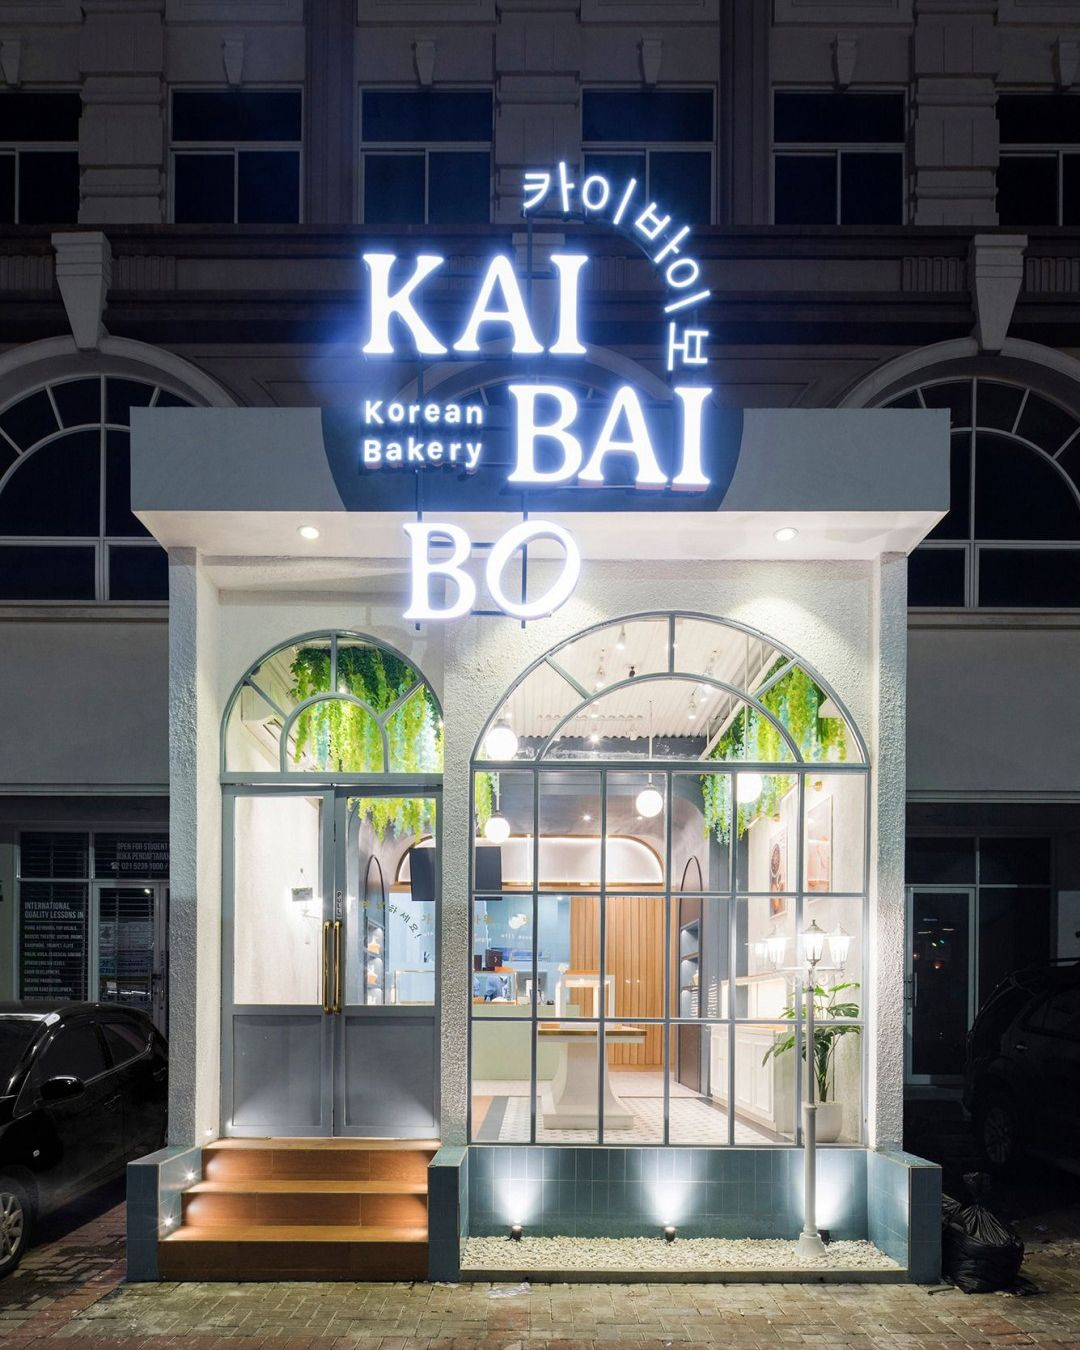 The Design of KAIBAIBO Bakery Shop Inspired from Korean Wave Culture